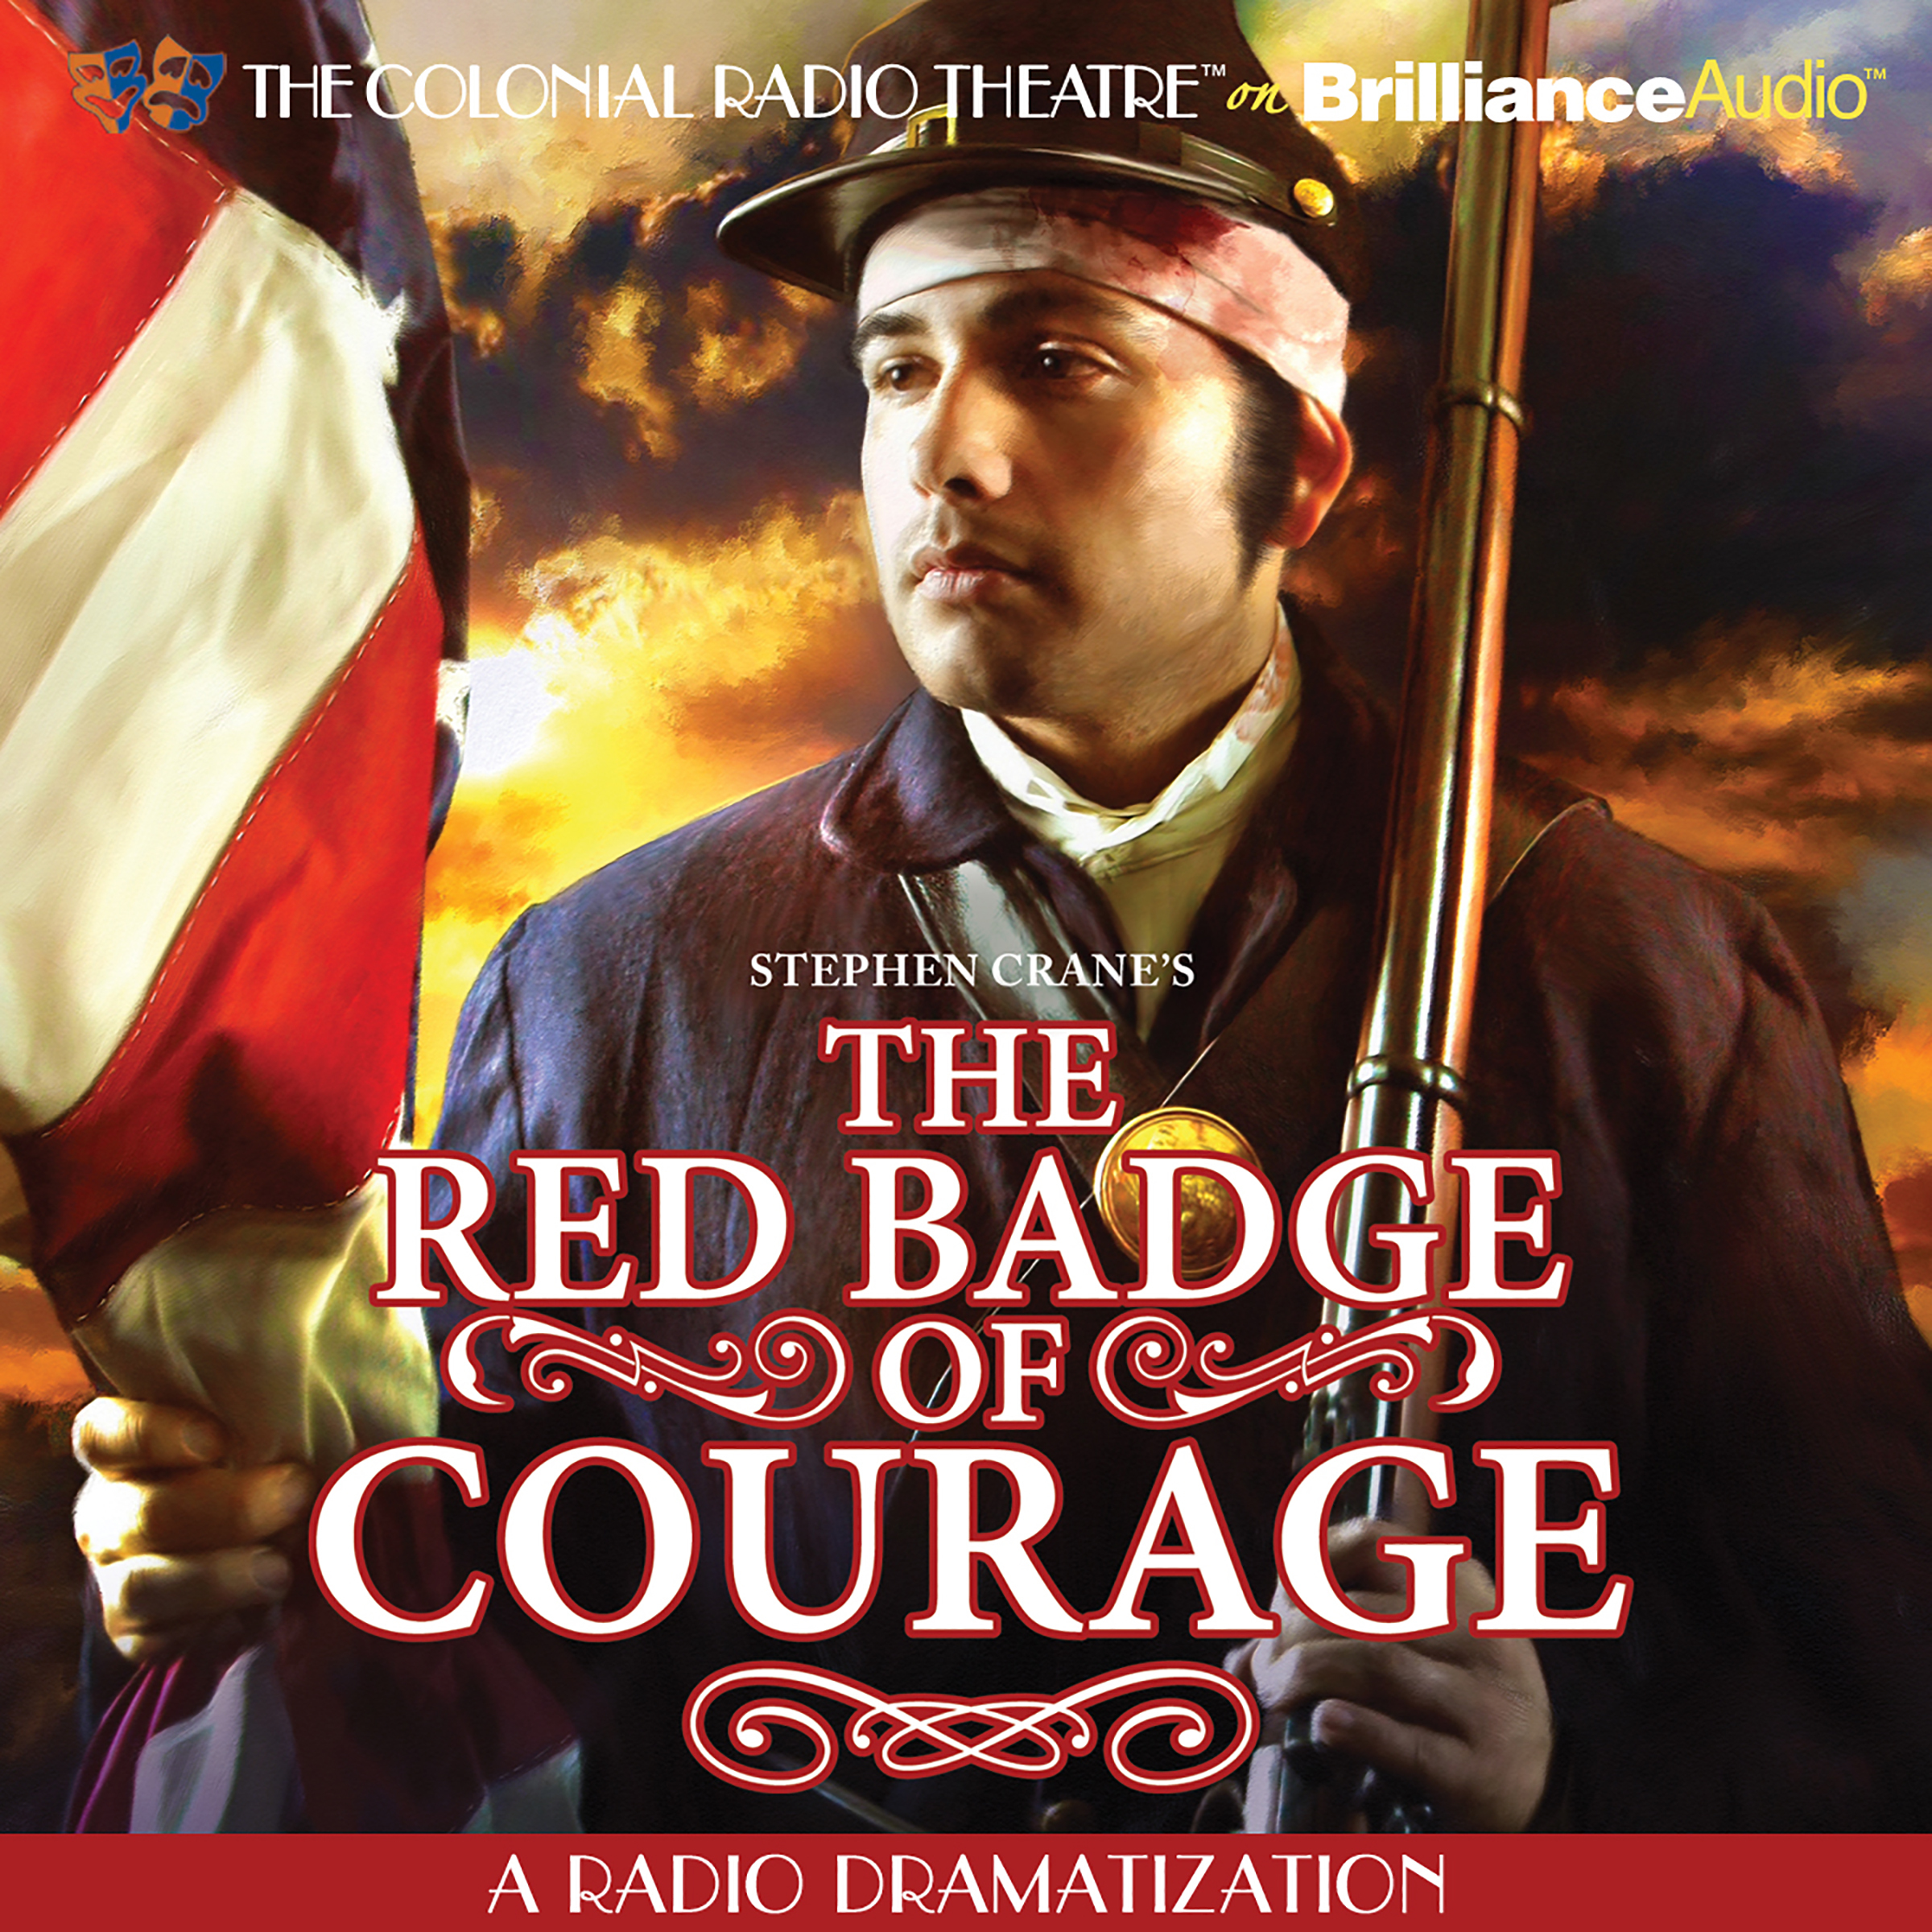 Printable Stephen Crane's The Red Badge of Courage: A Radio Dramatization Audiobook Cover Art